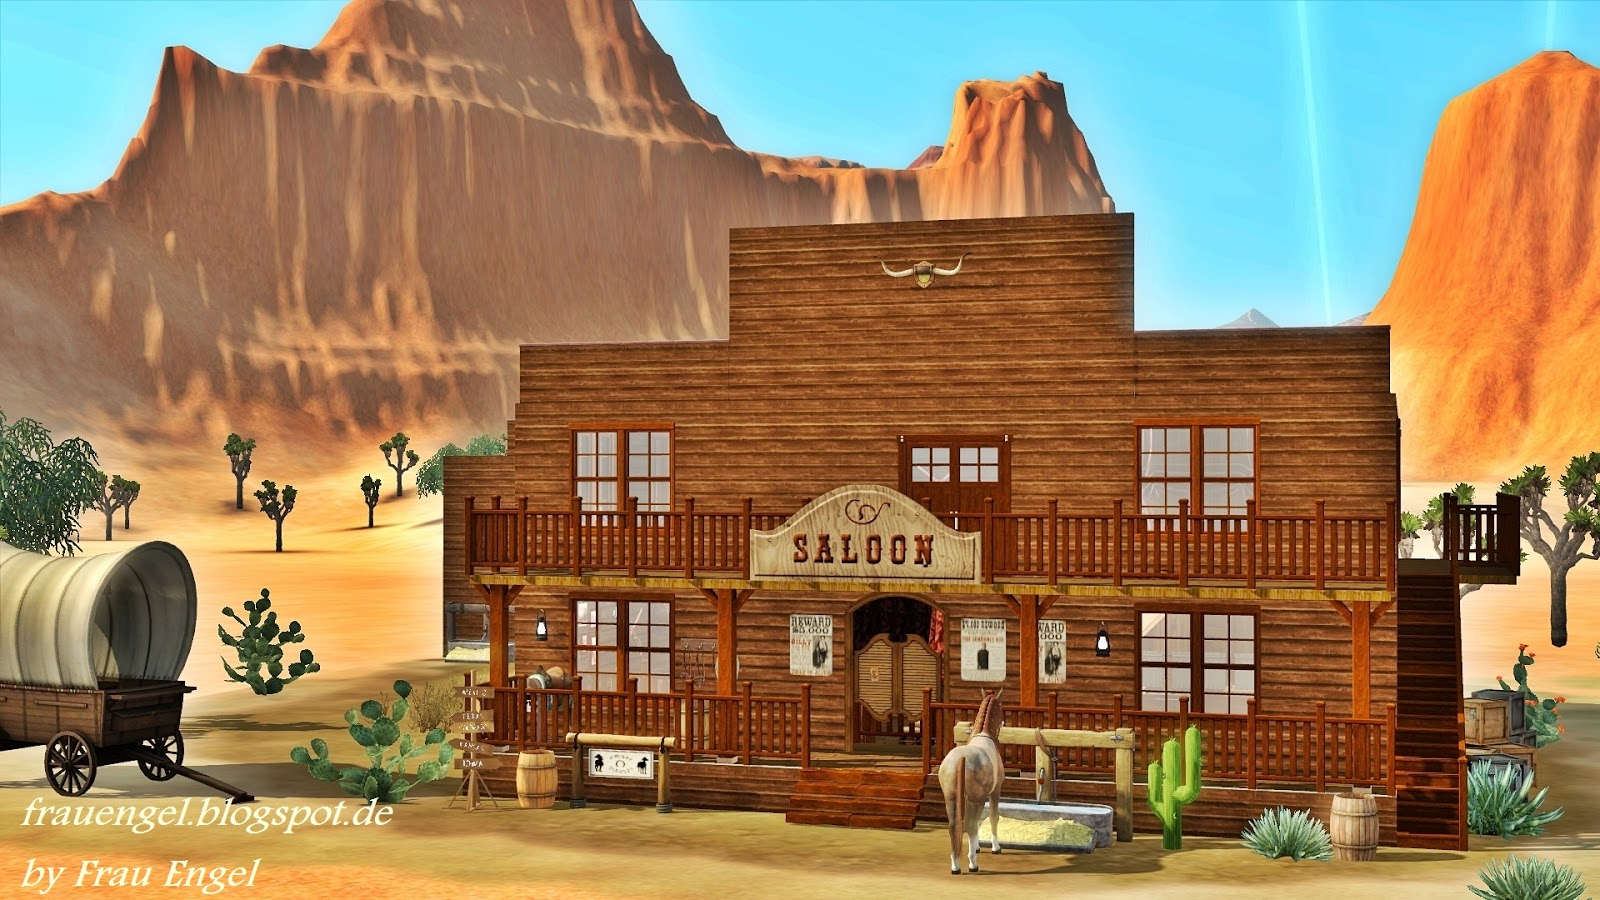 Saloon in the Wild West by Frau Engel